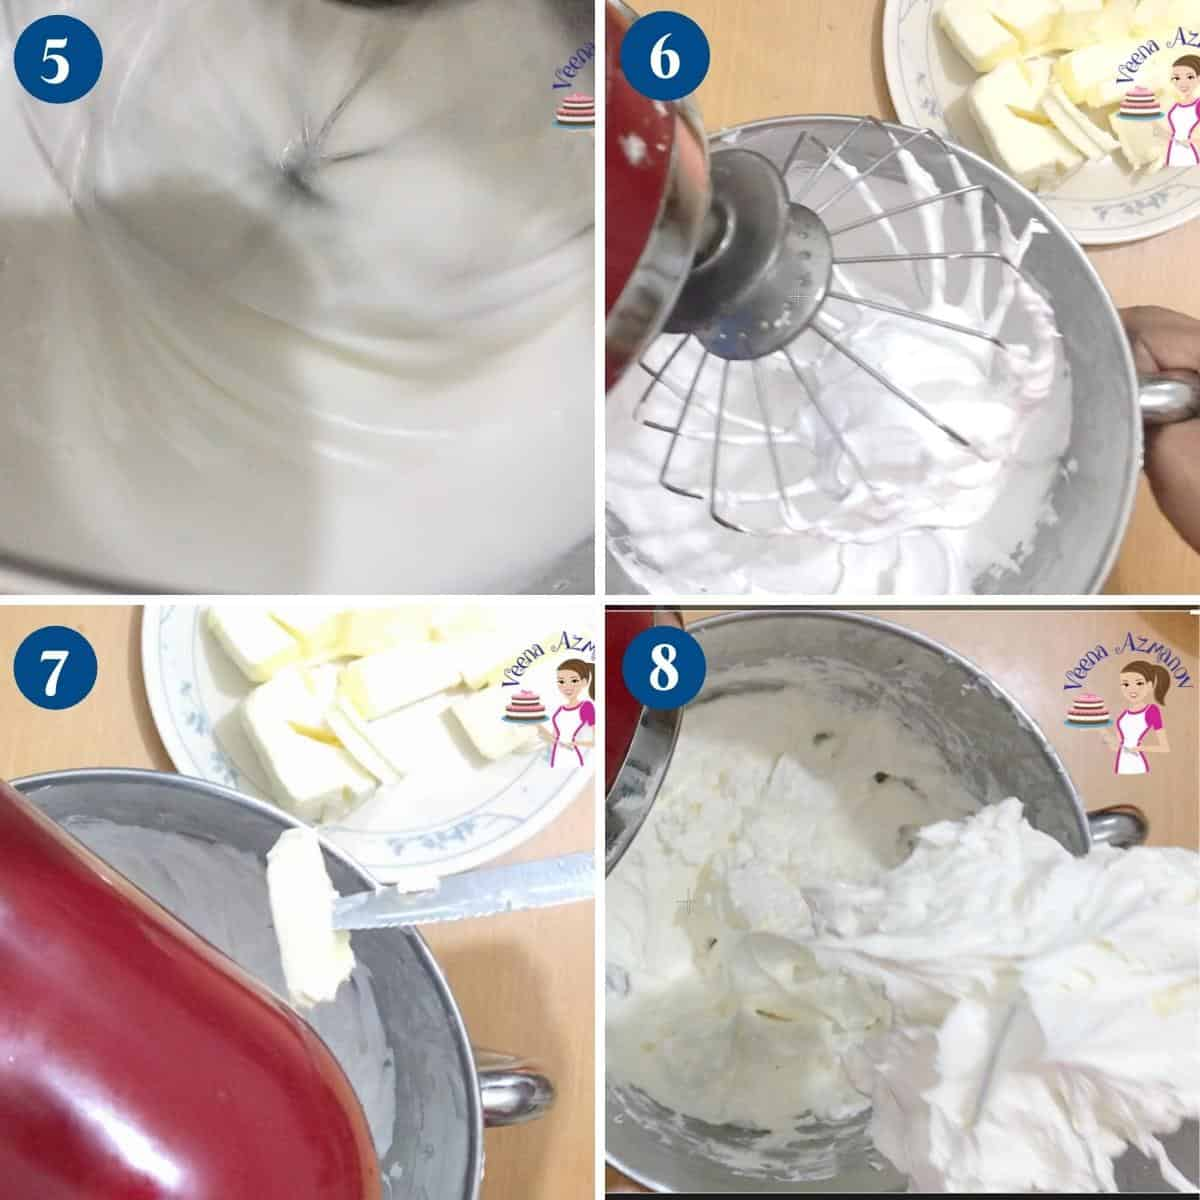 Progress pictures adding butter to the Swiss meringue.